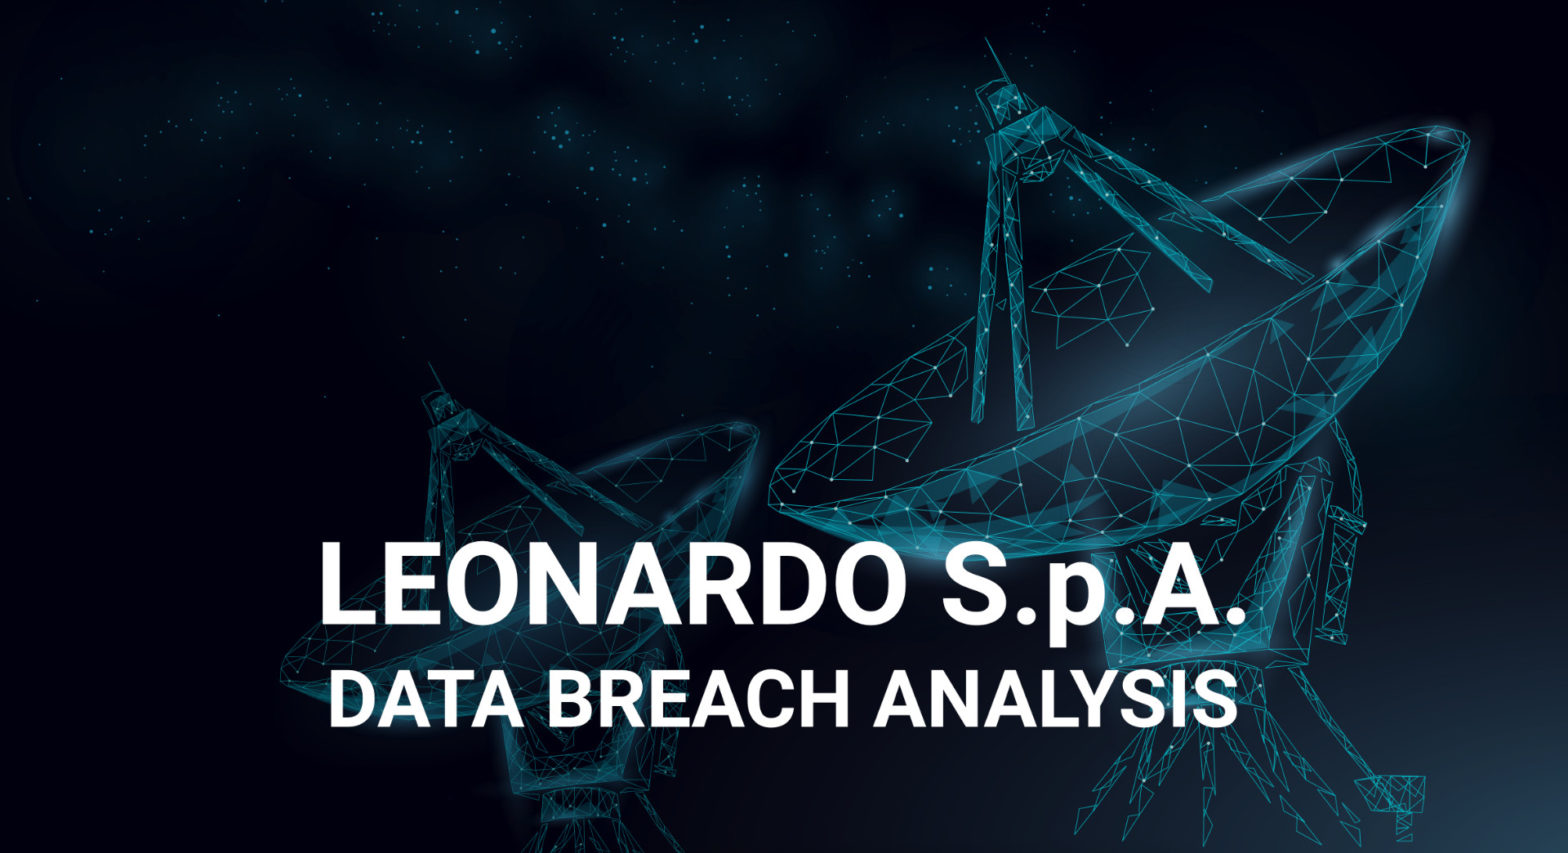 Leonardo data breach